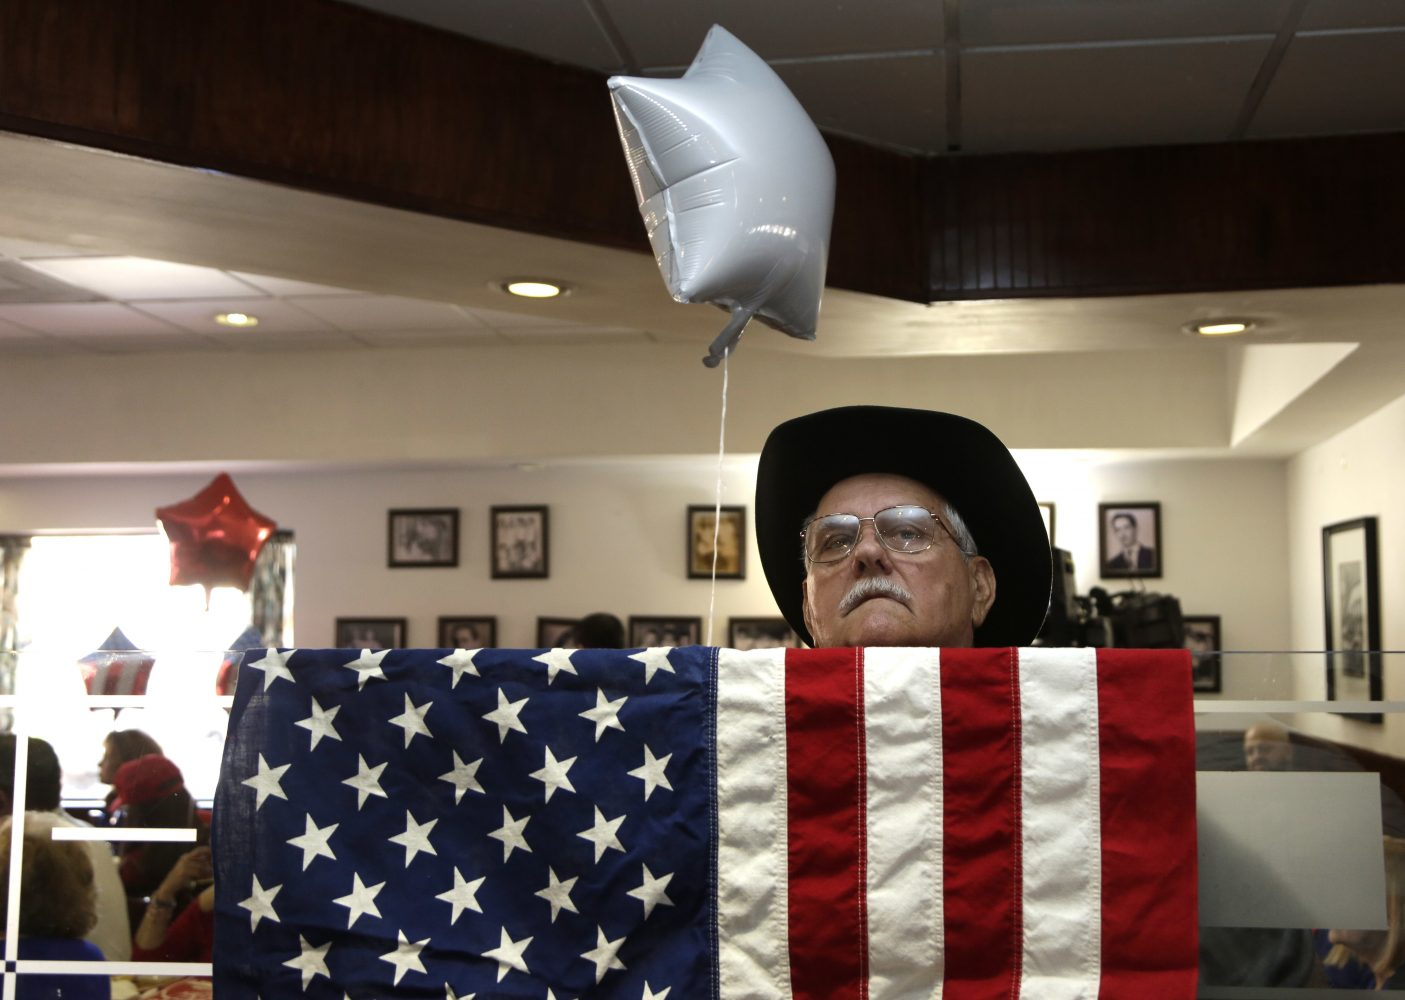 Cuban American Rene Espinosa watches a televised broadcast of the presidential inauguration of Donald Trump, Friday, Jan. 20, 2017, during a watch party organized by Hispanas for Trump, in Miami. (AP Photo/Lynne Sladky)